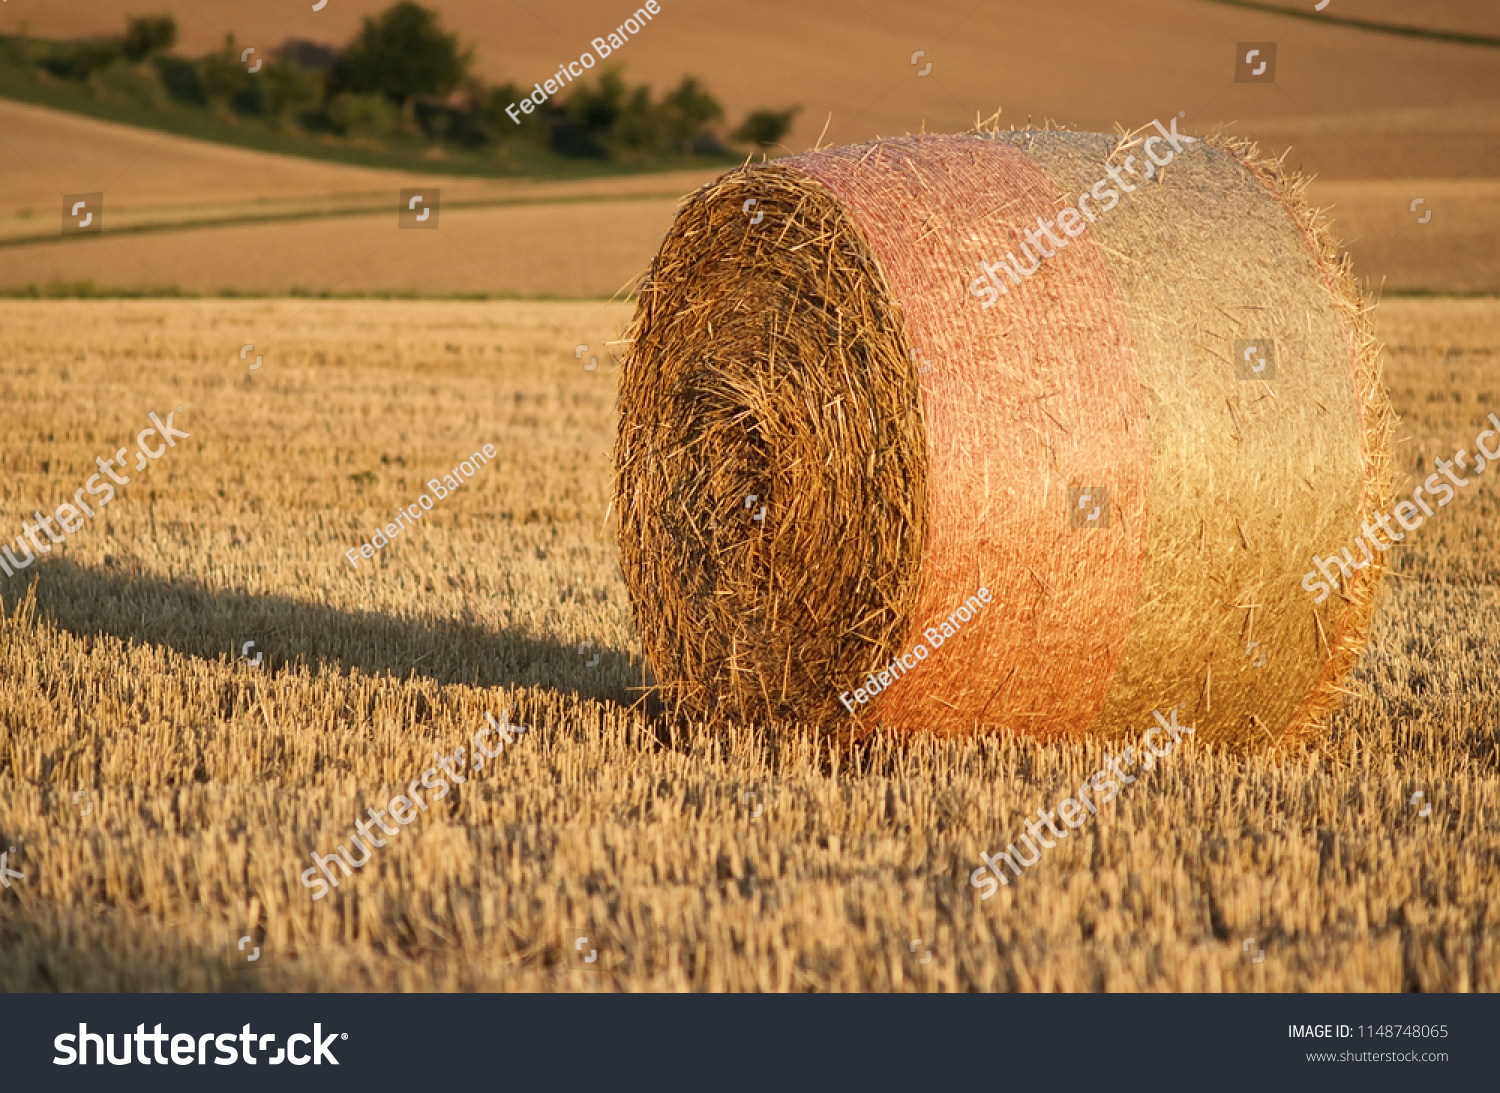 stock-photo-close-up-of-an-isolated-hay-